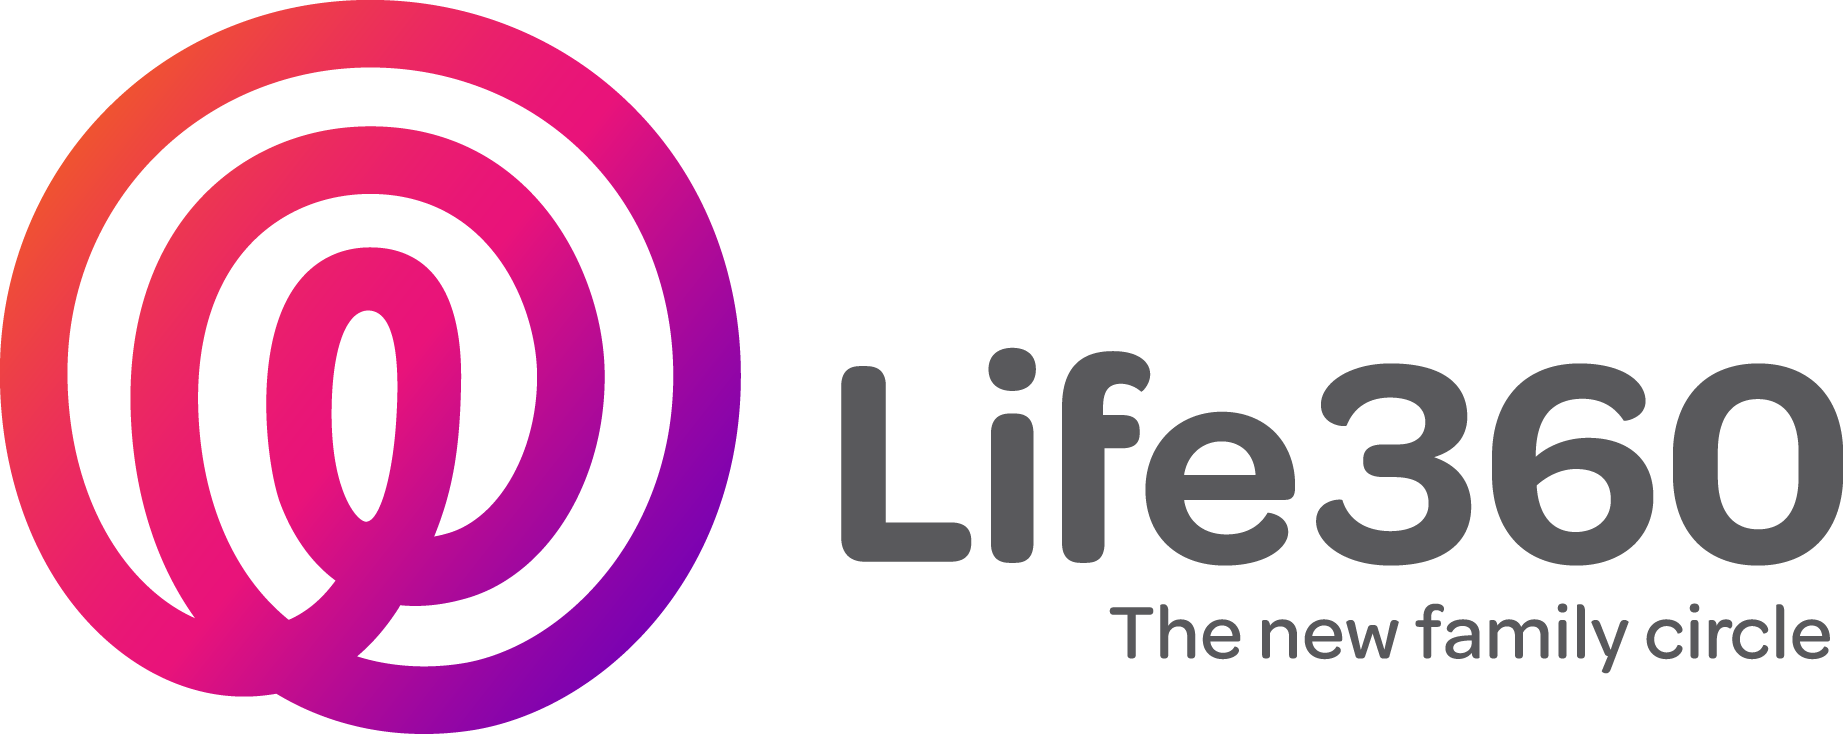 The Life360 safety app tracks your loved ones and keeps you connected